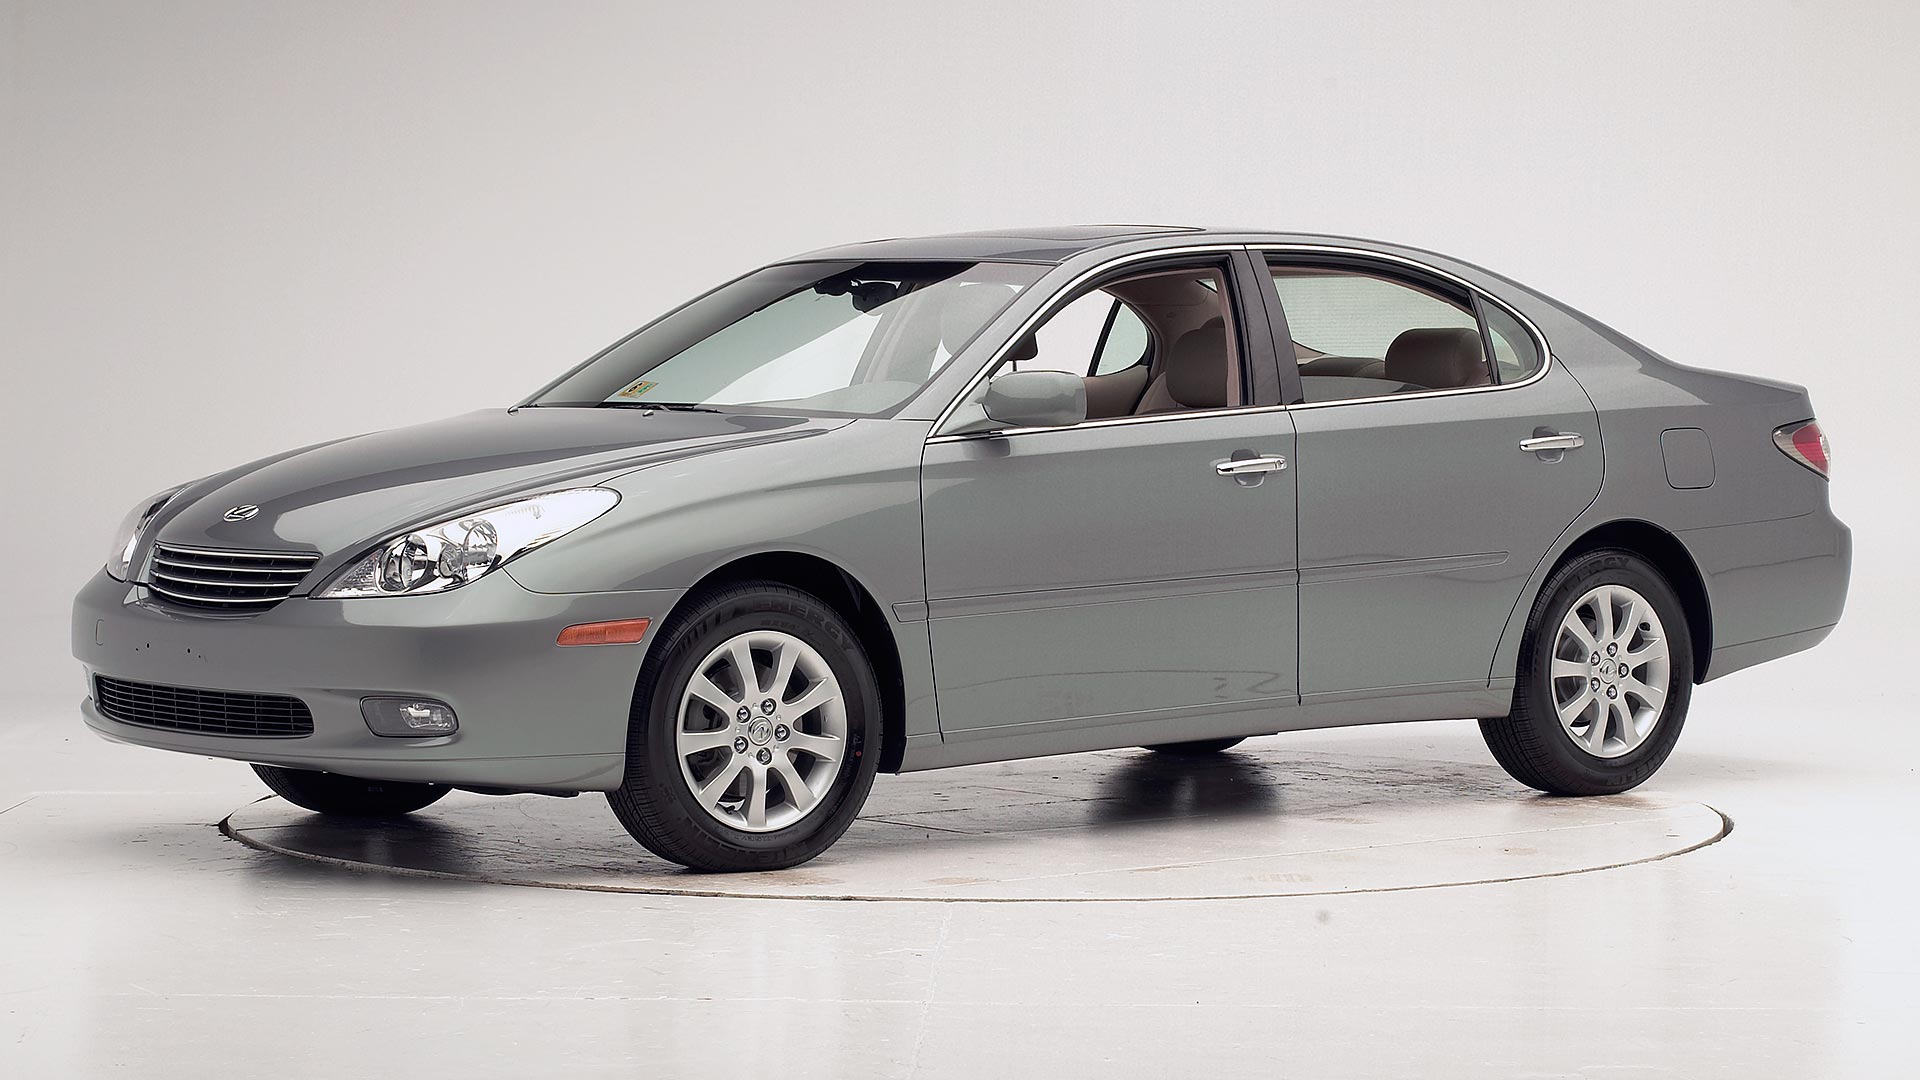 2004 Lexus ES 330 4-door sedan